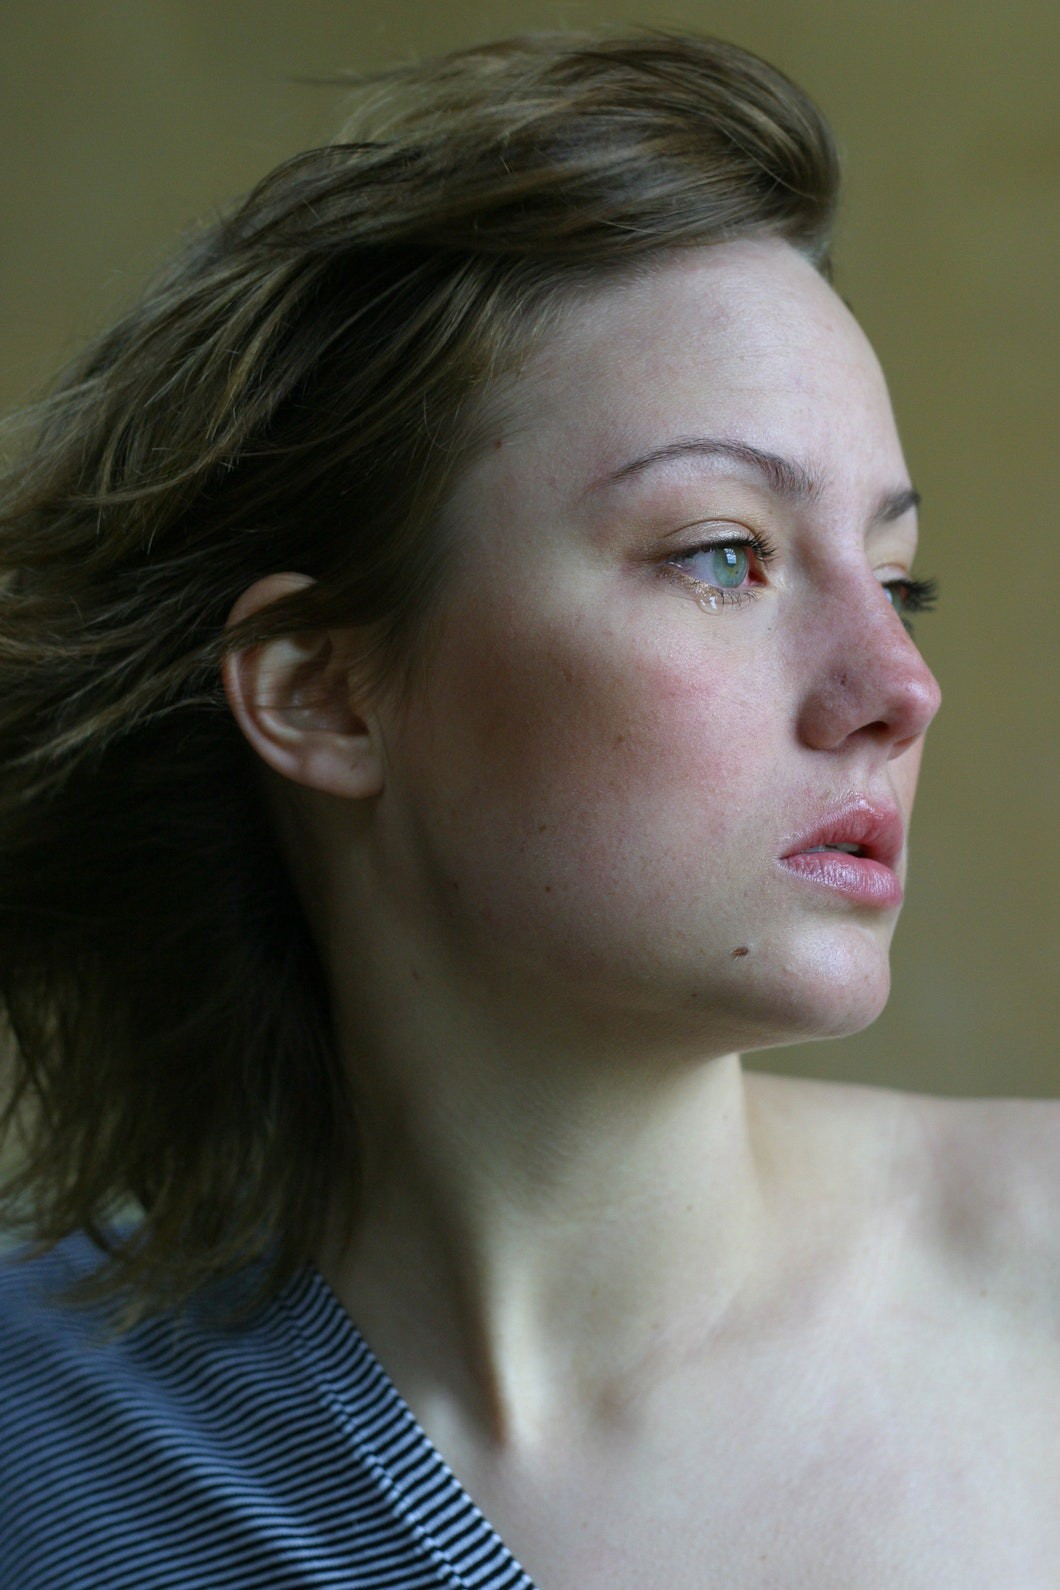 Woman with her head turned to the left with a tear dropping from her eye